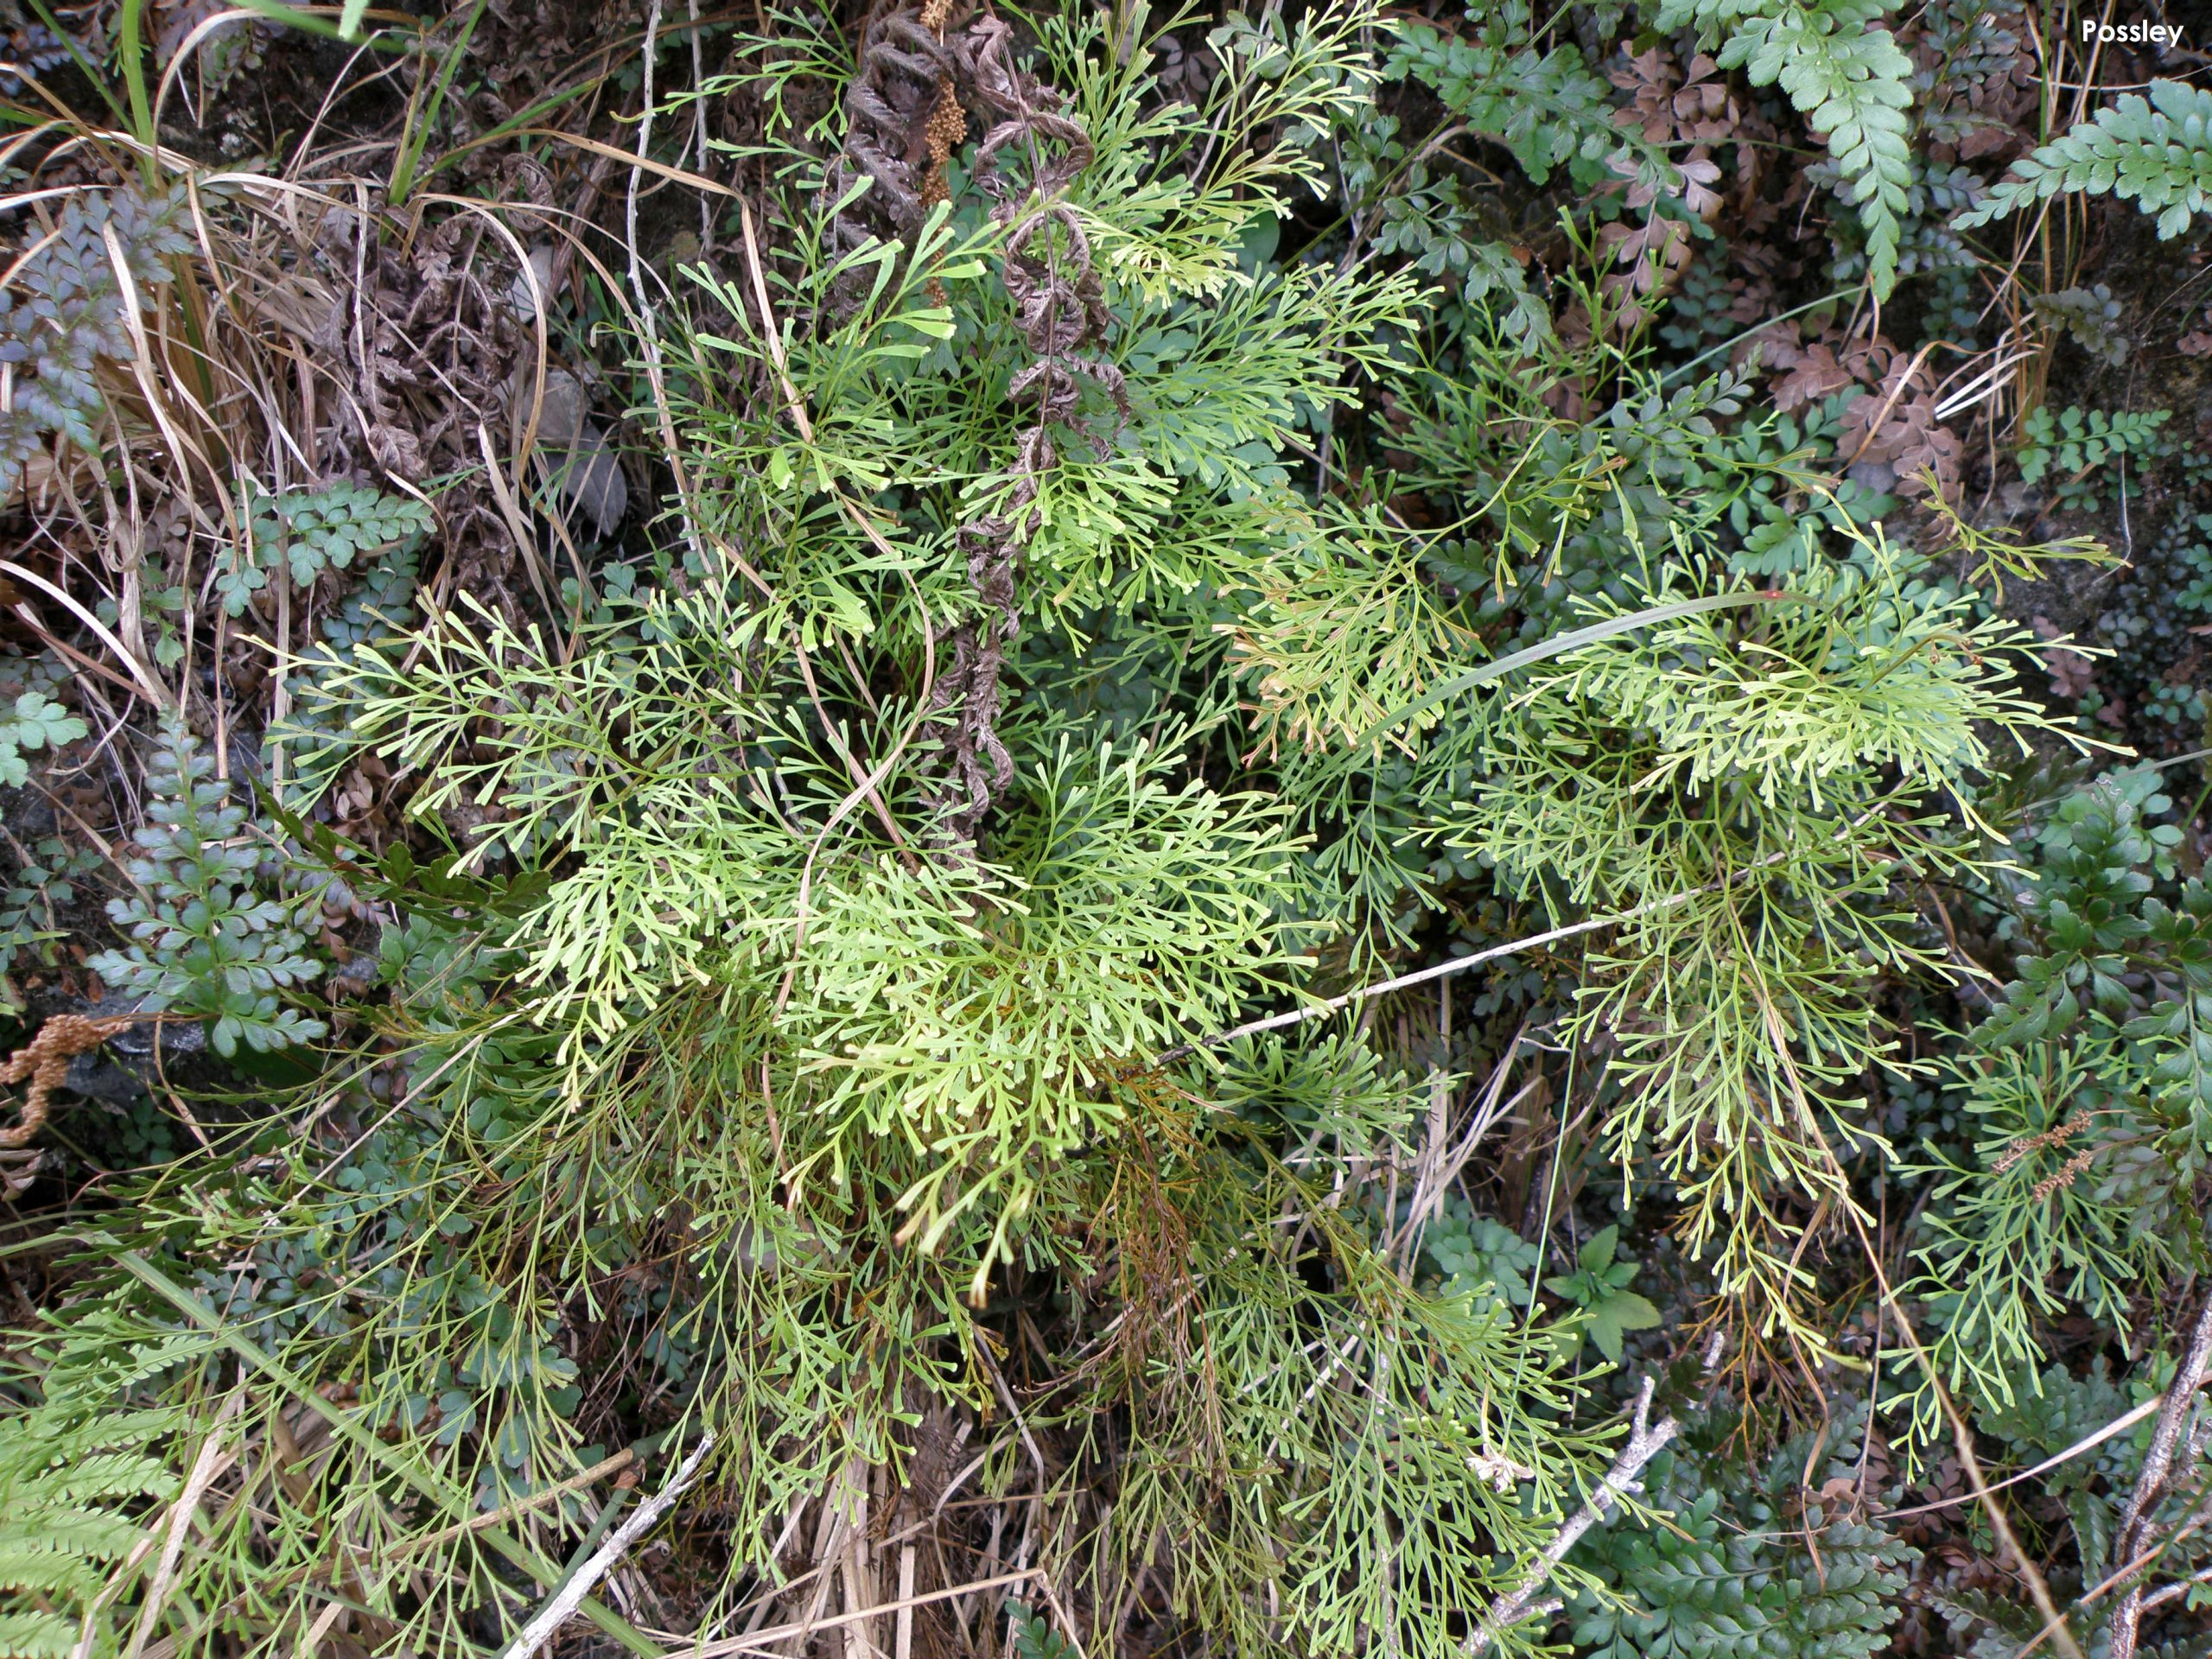 Wedgelet fern (Odontosoria clavata) is a rare plan of the pine rocklands in South Florida.